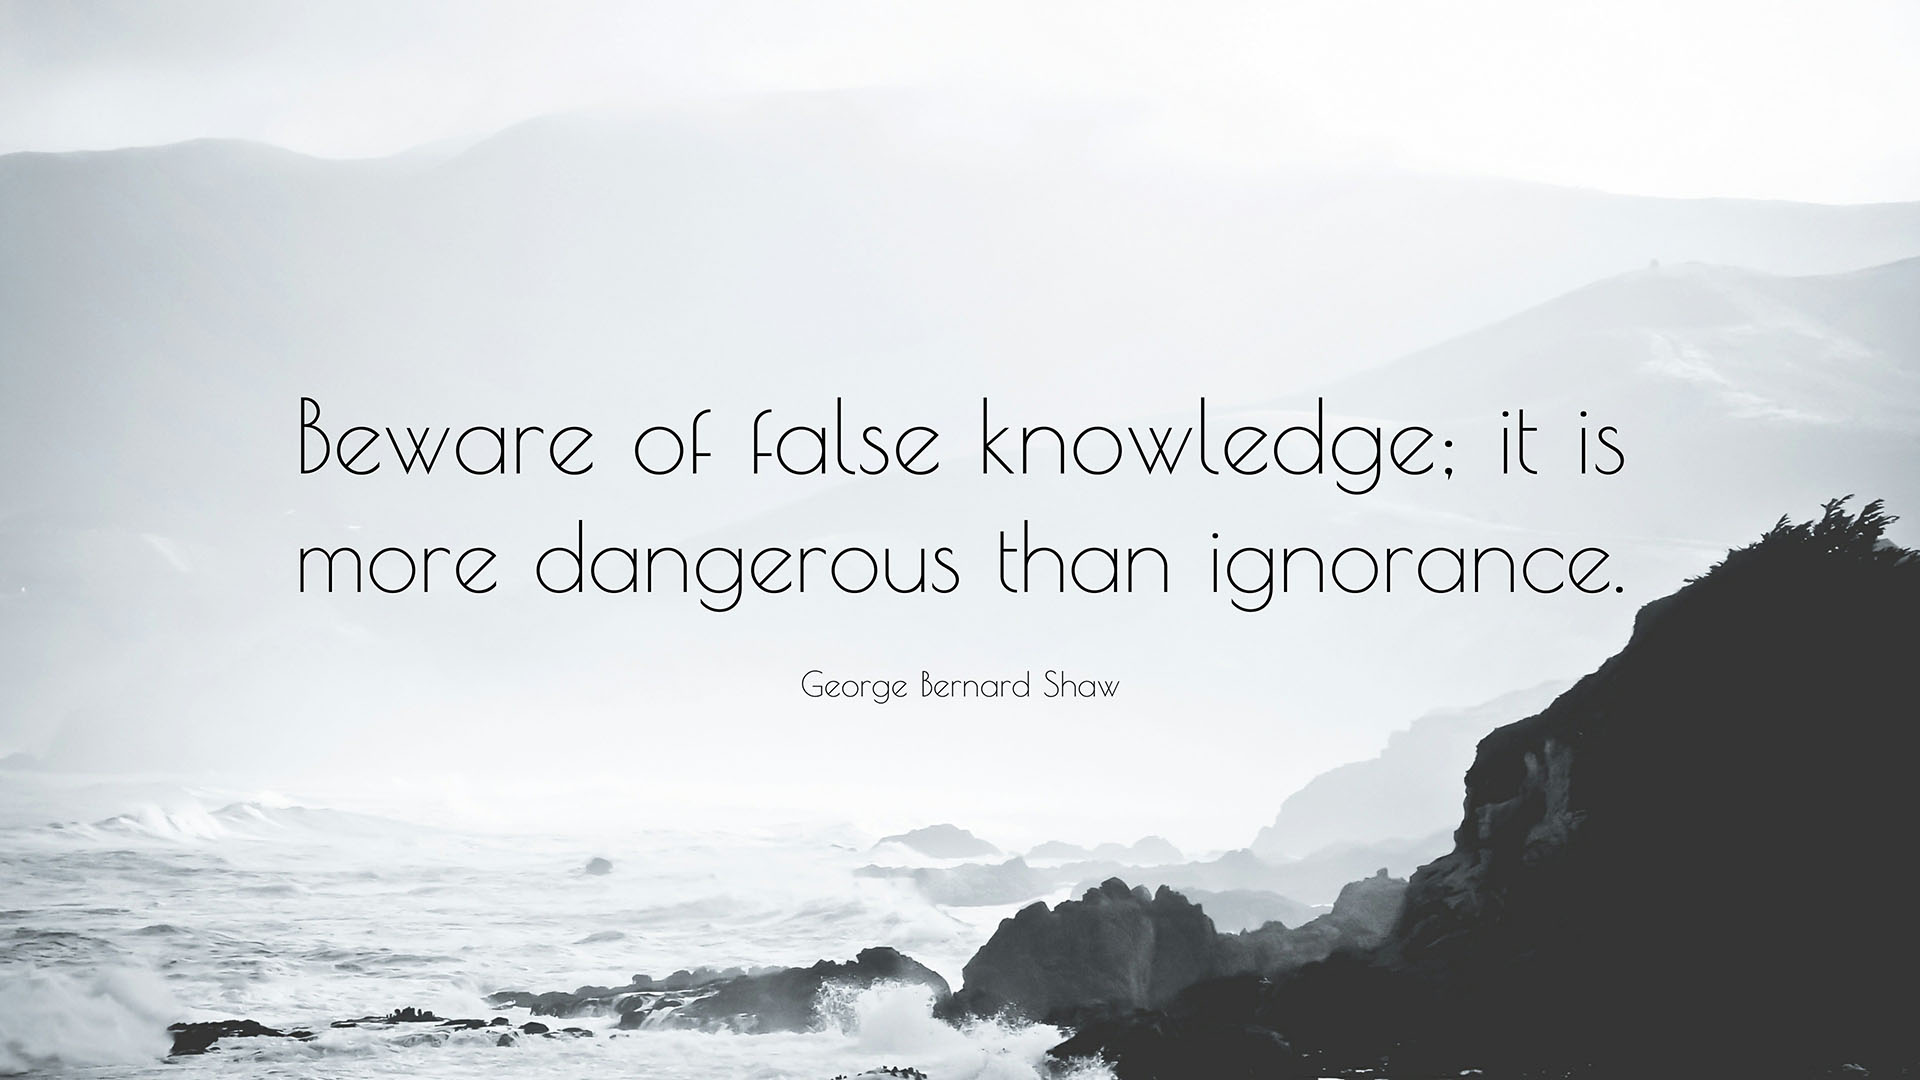 beware of false knowledge